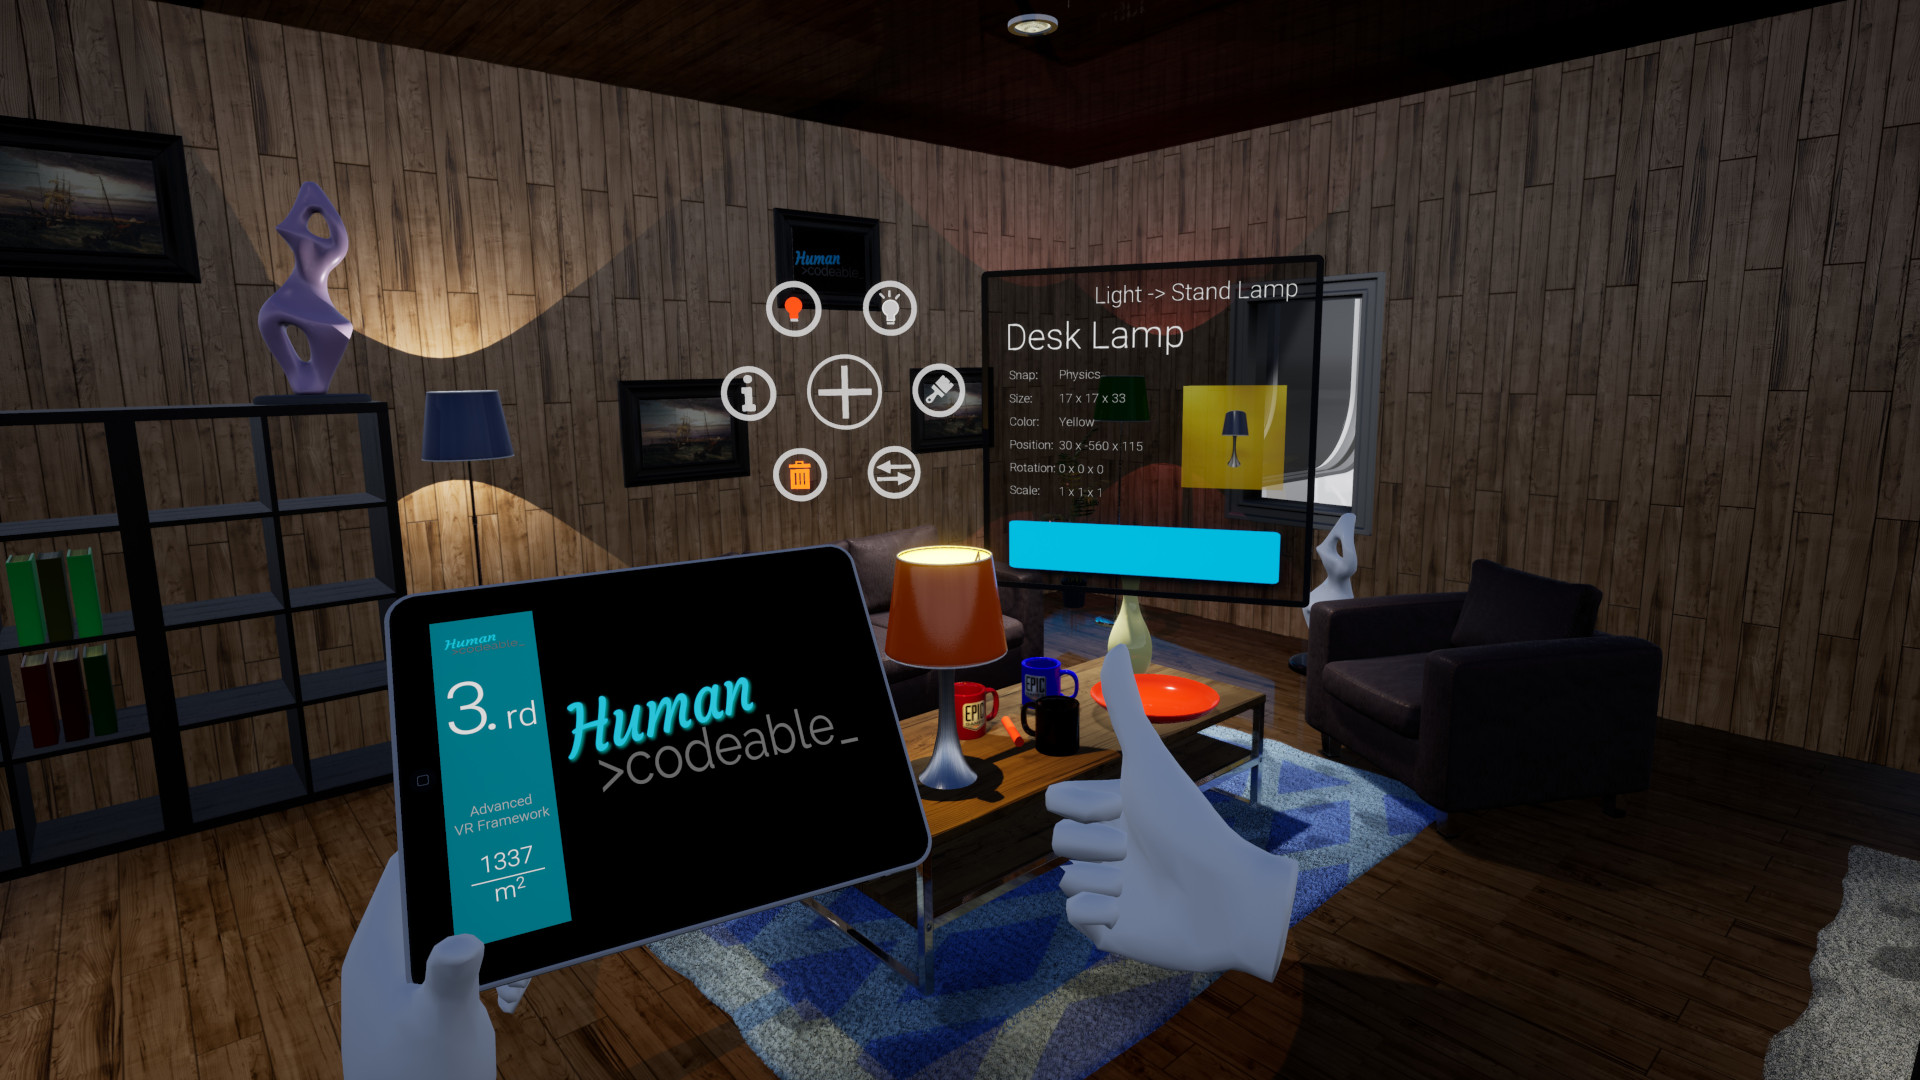 Advanced VR Framework by Human Codeable in Blueprints - UE4 Marketplace